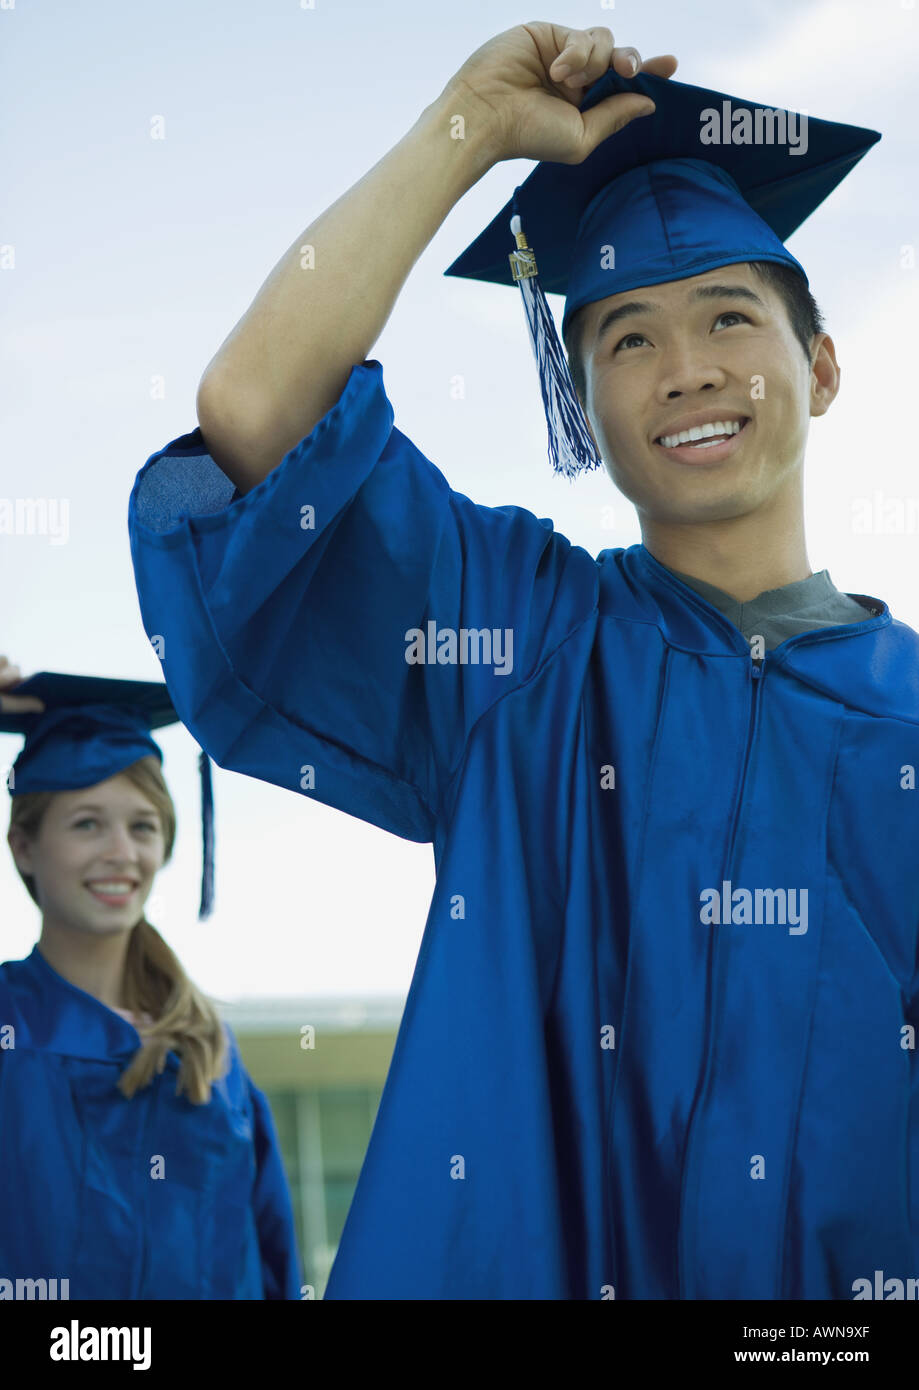 Graduates with hands on caps - Stock Image